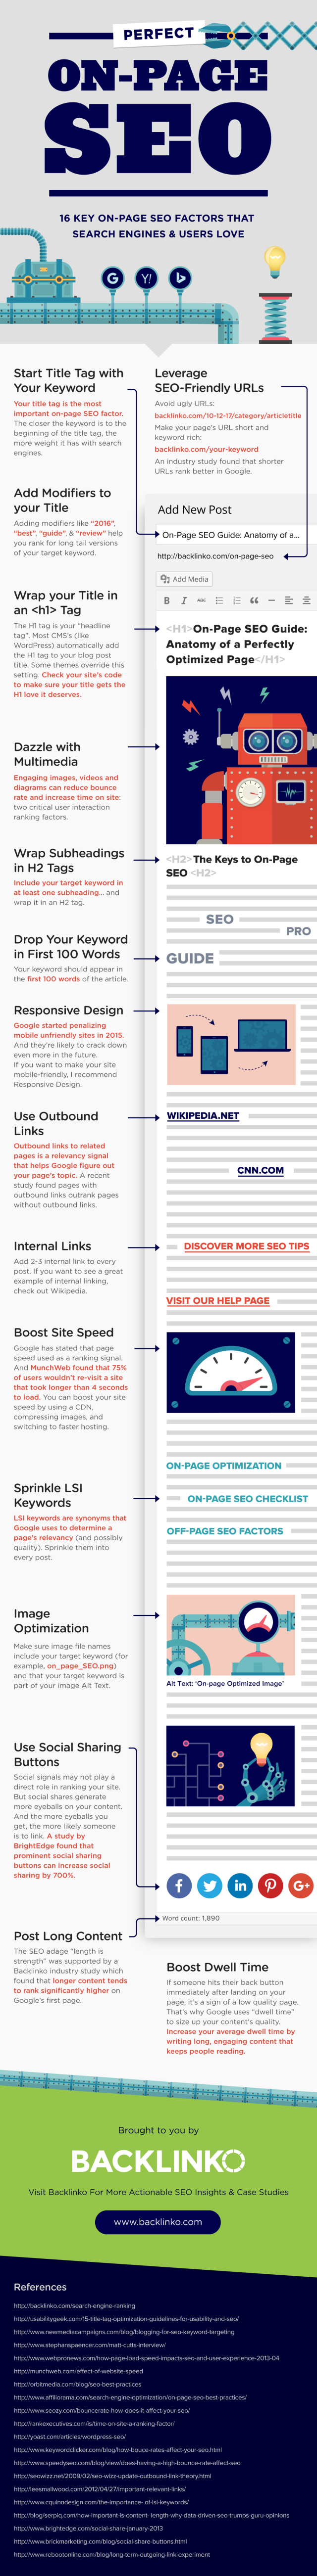 on_page_seo_infographic_v3-1.png